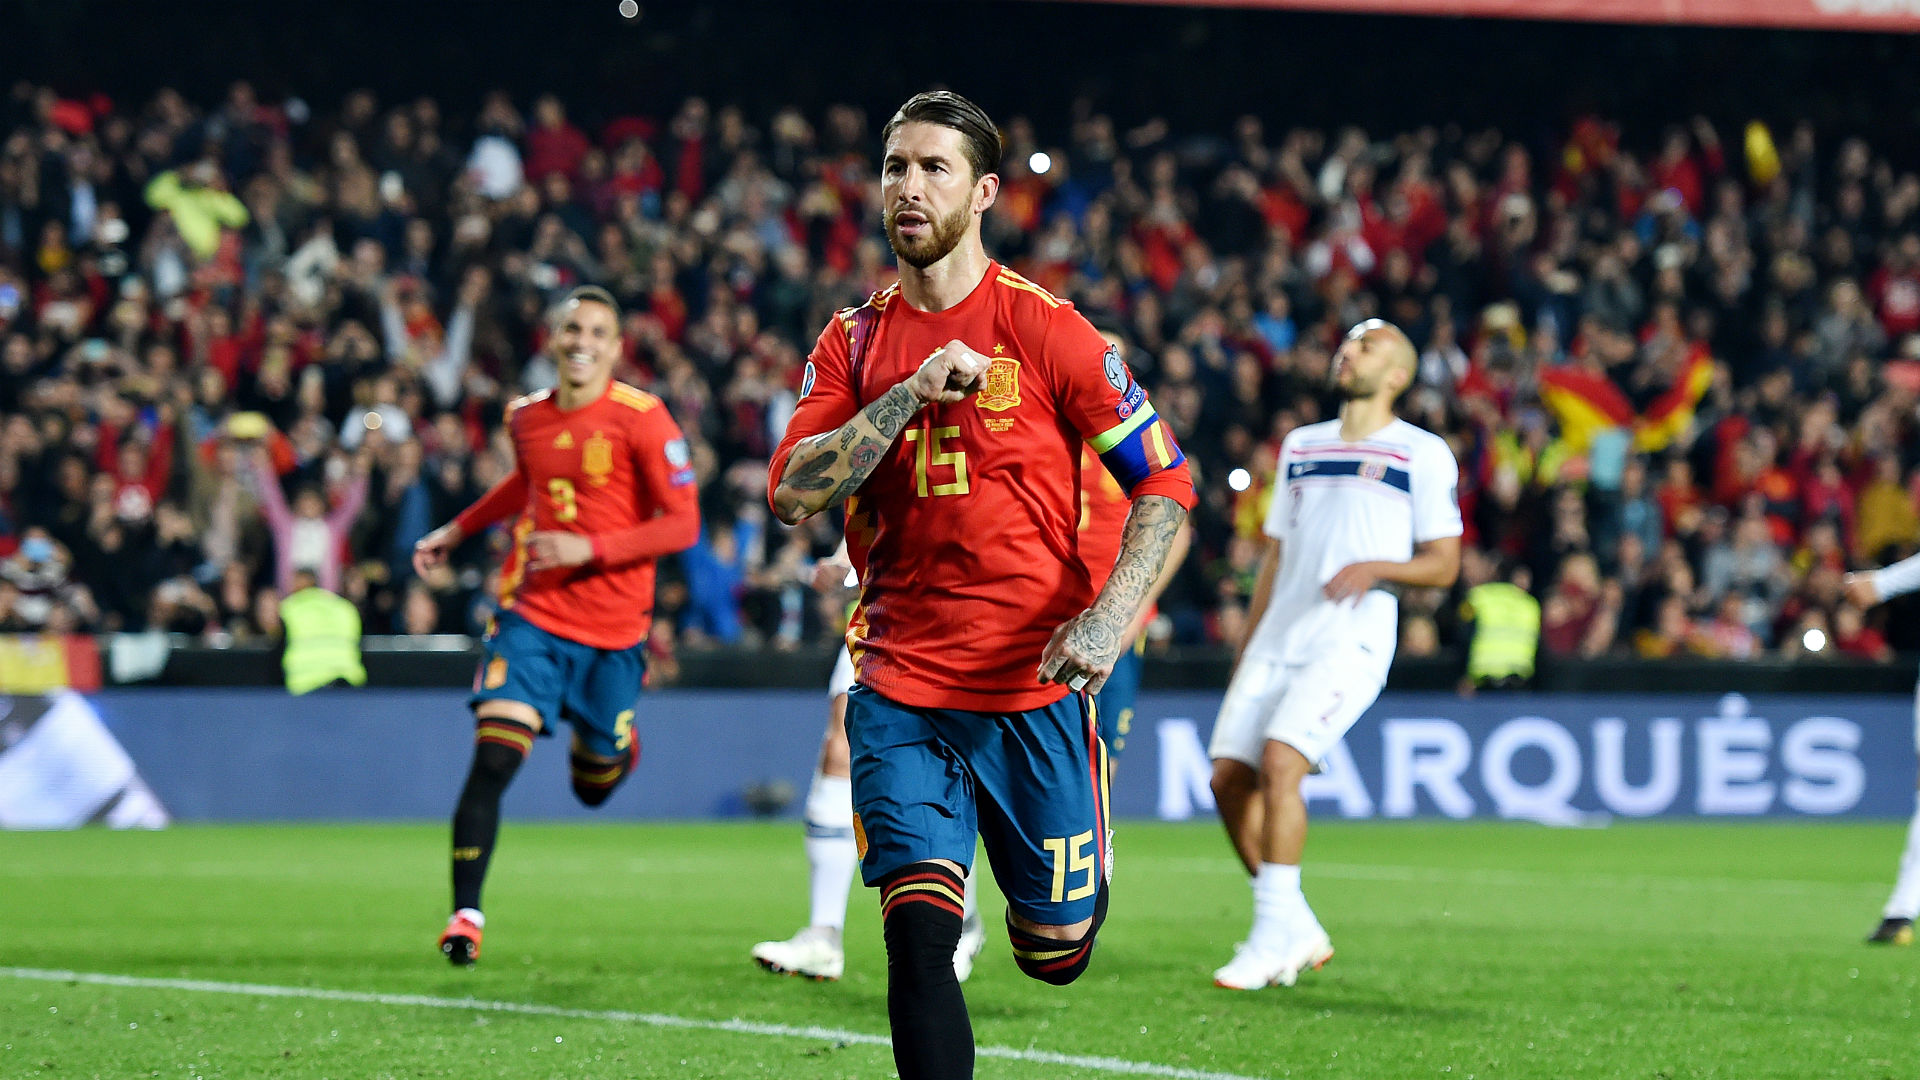 Luis Enrique's absence no problem for Spain, claims Ramos